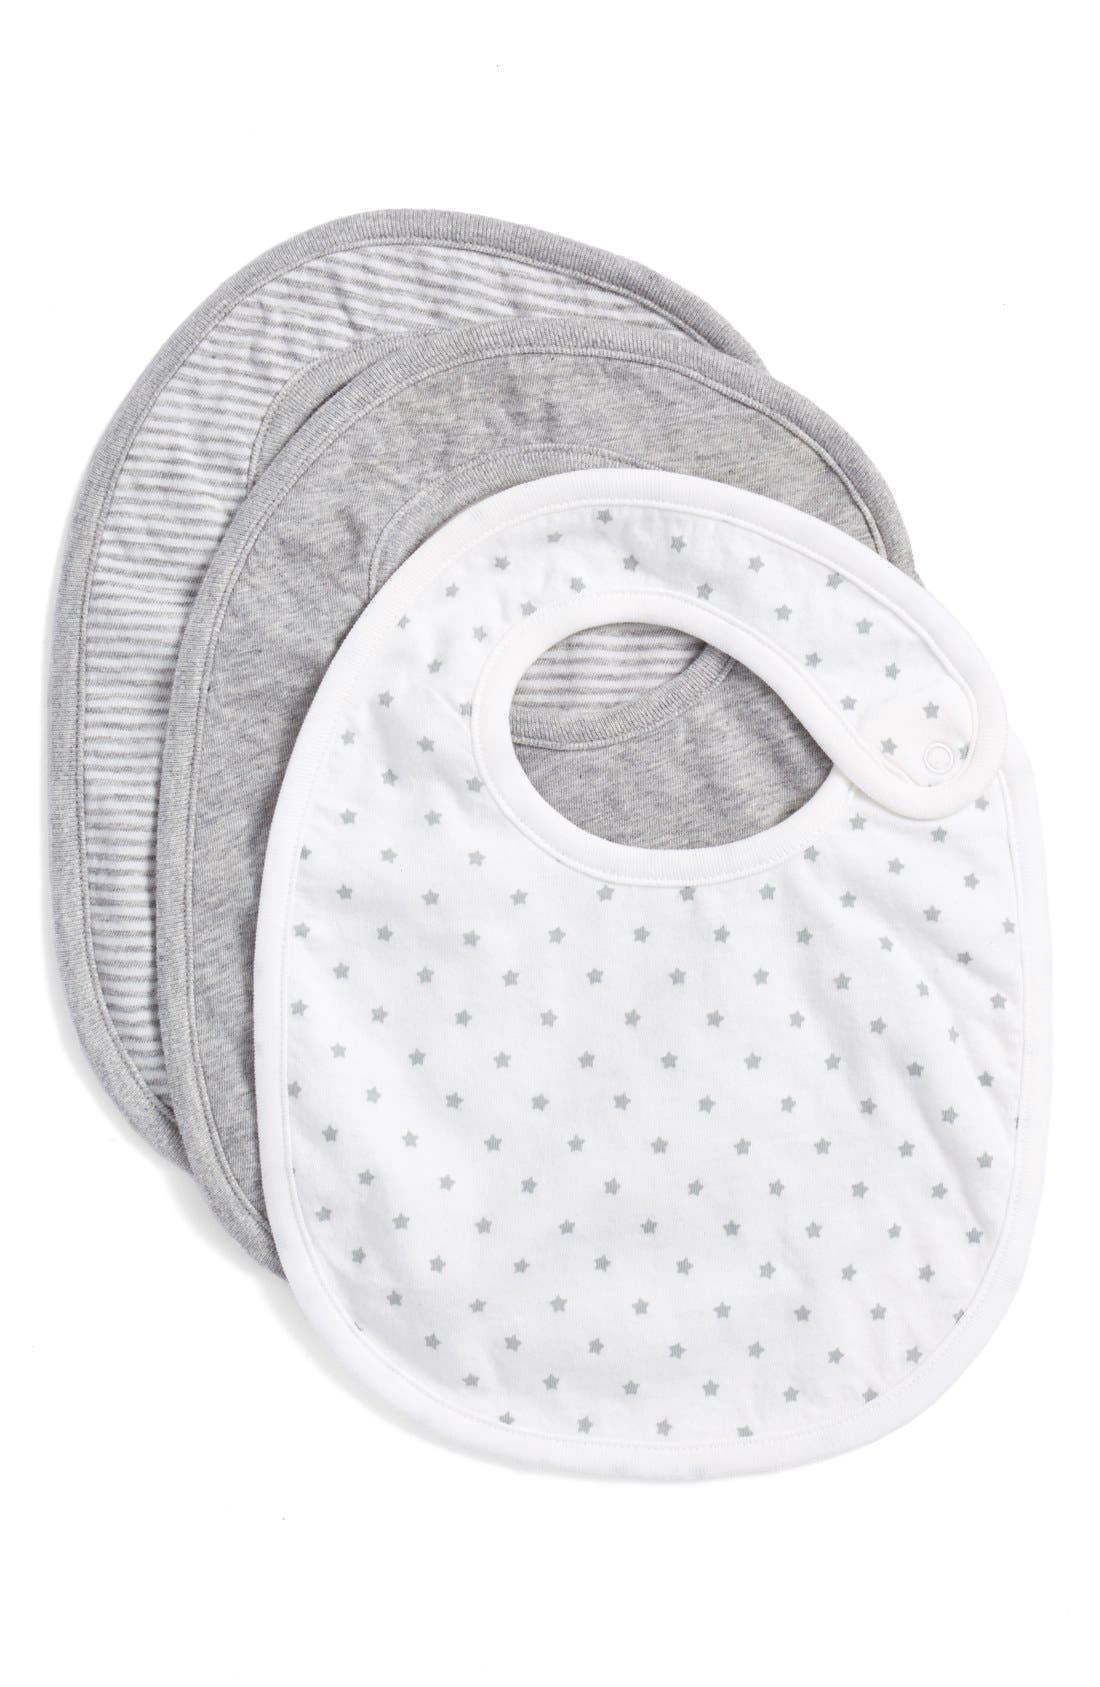 NORDSTROM BABY Snap Bibs, Main, color, GREY ASH HEATHER PACK